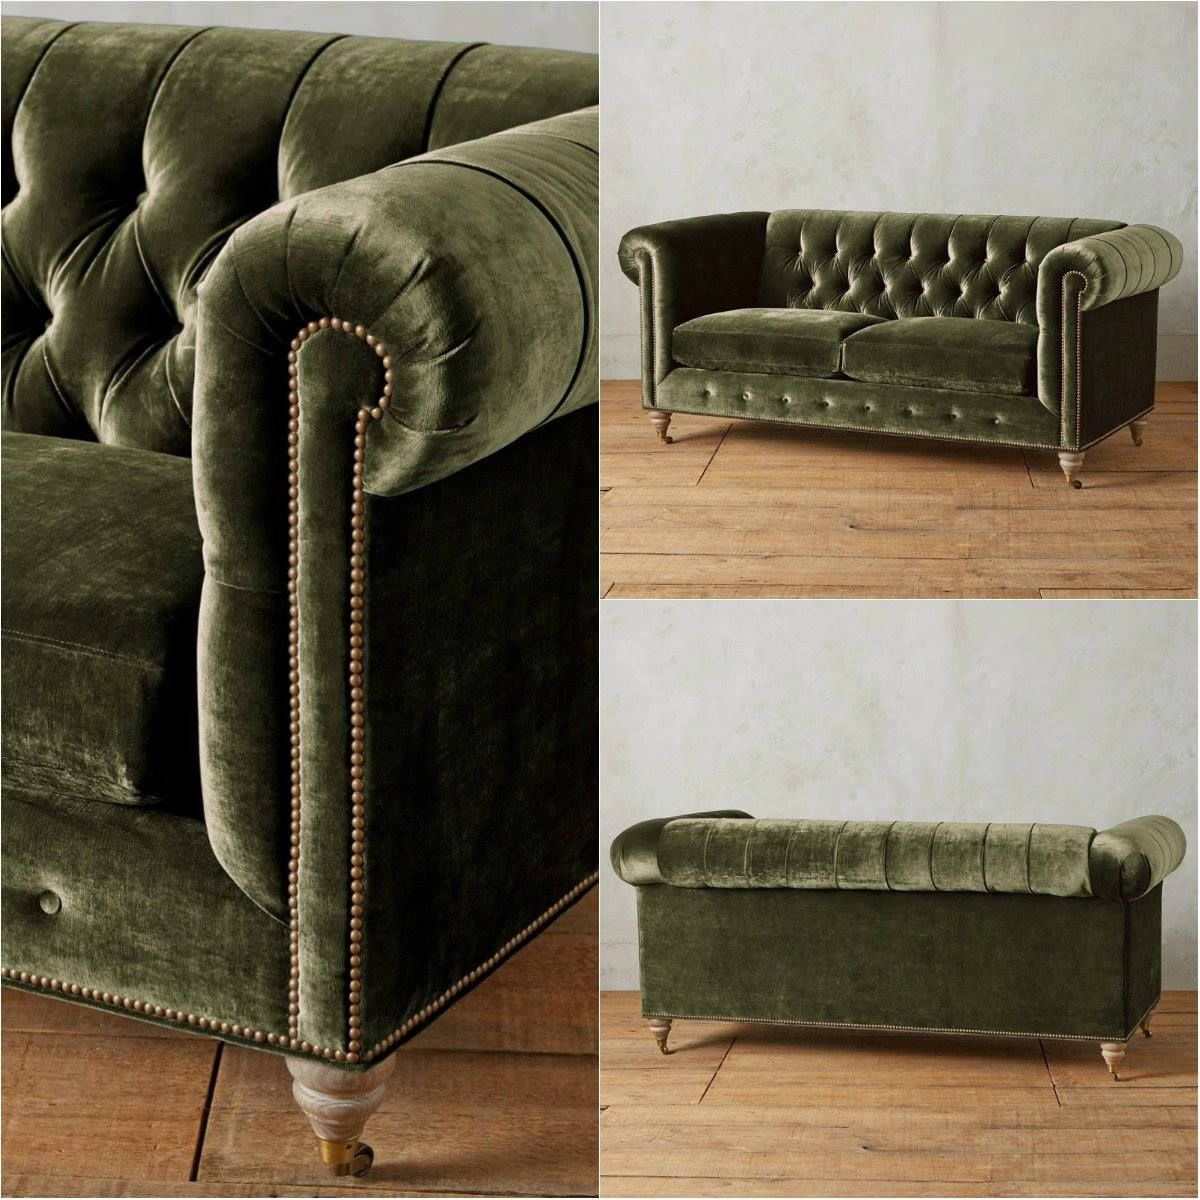 Chesterfield Sofa In Richly Hued Dark Green Velvet Upholstery